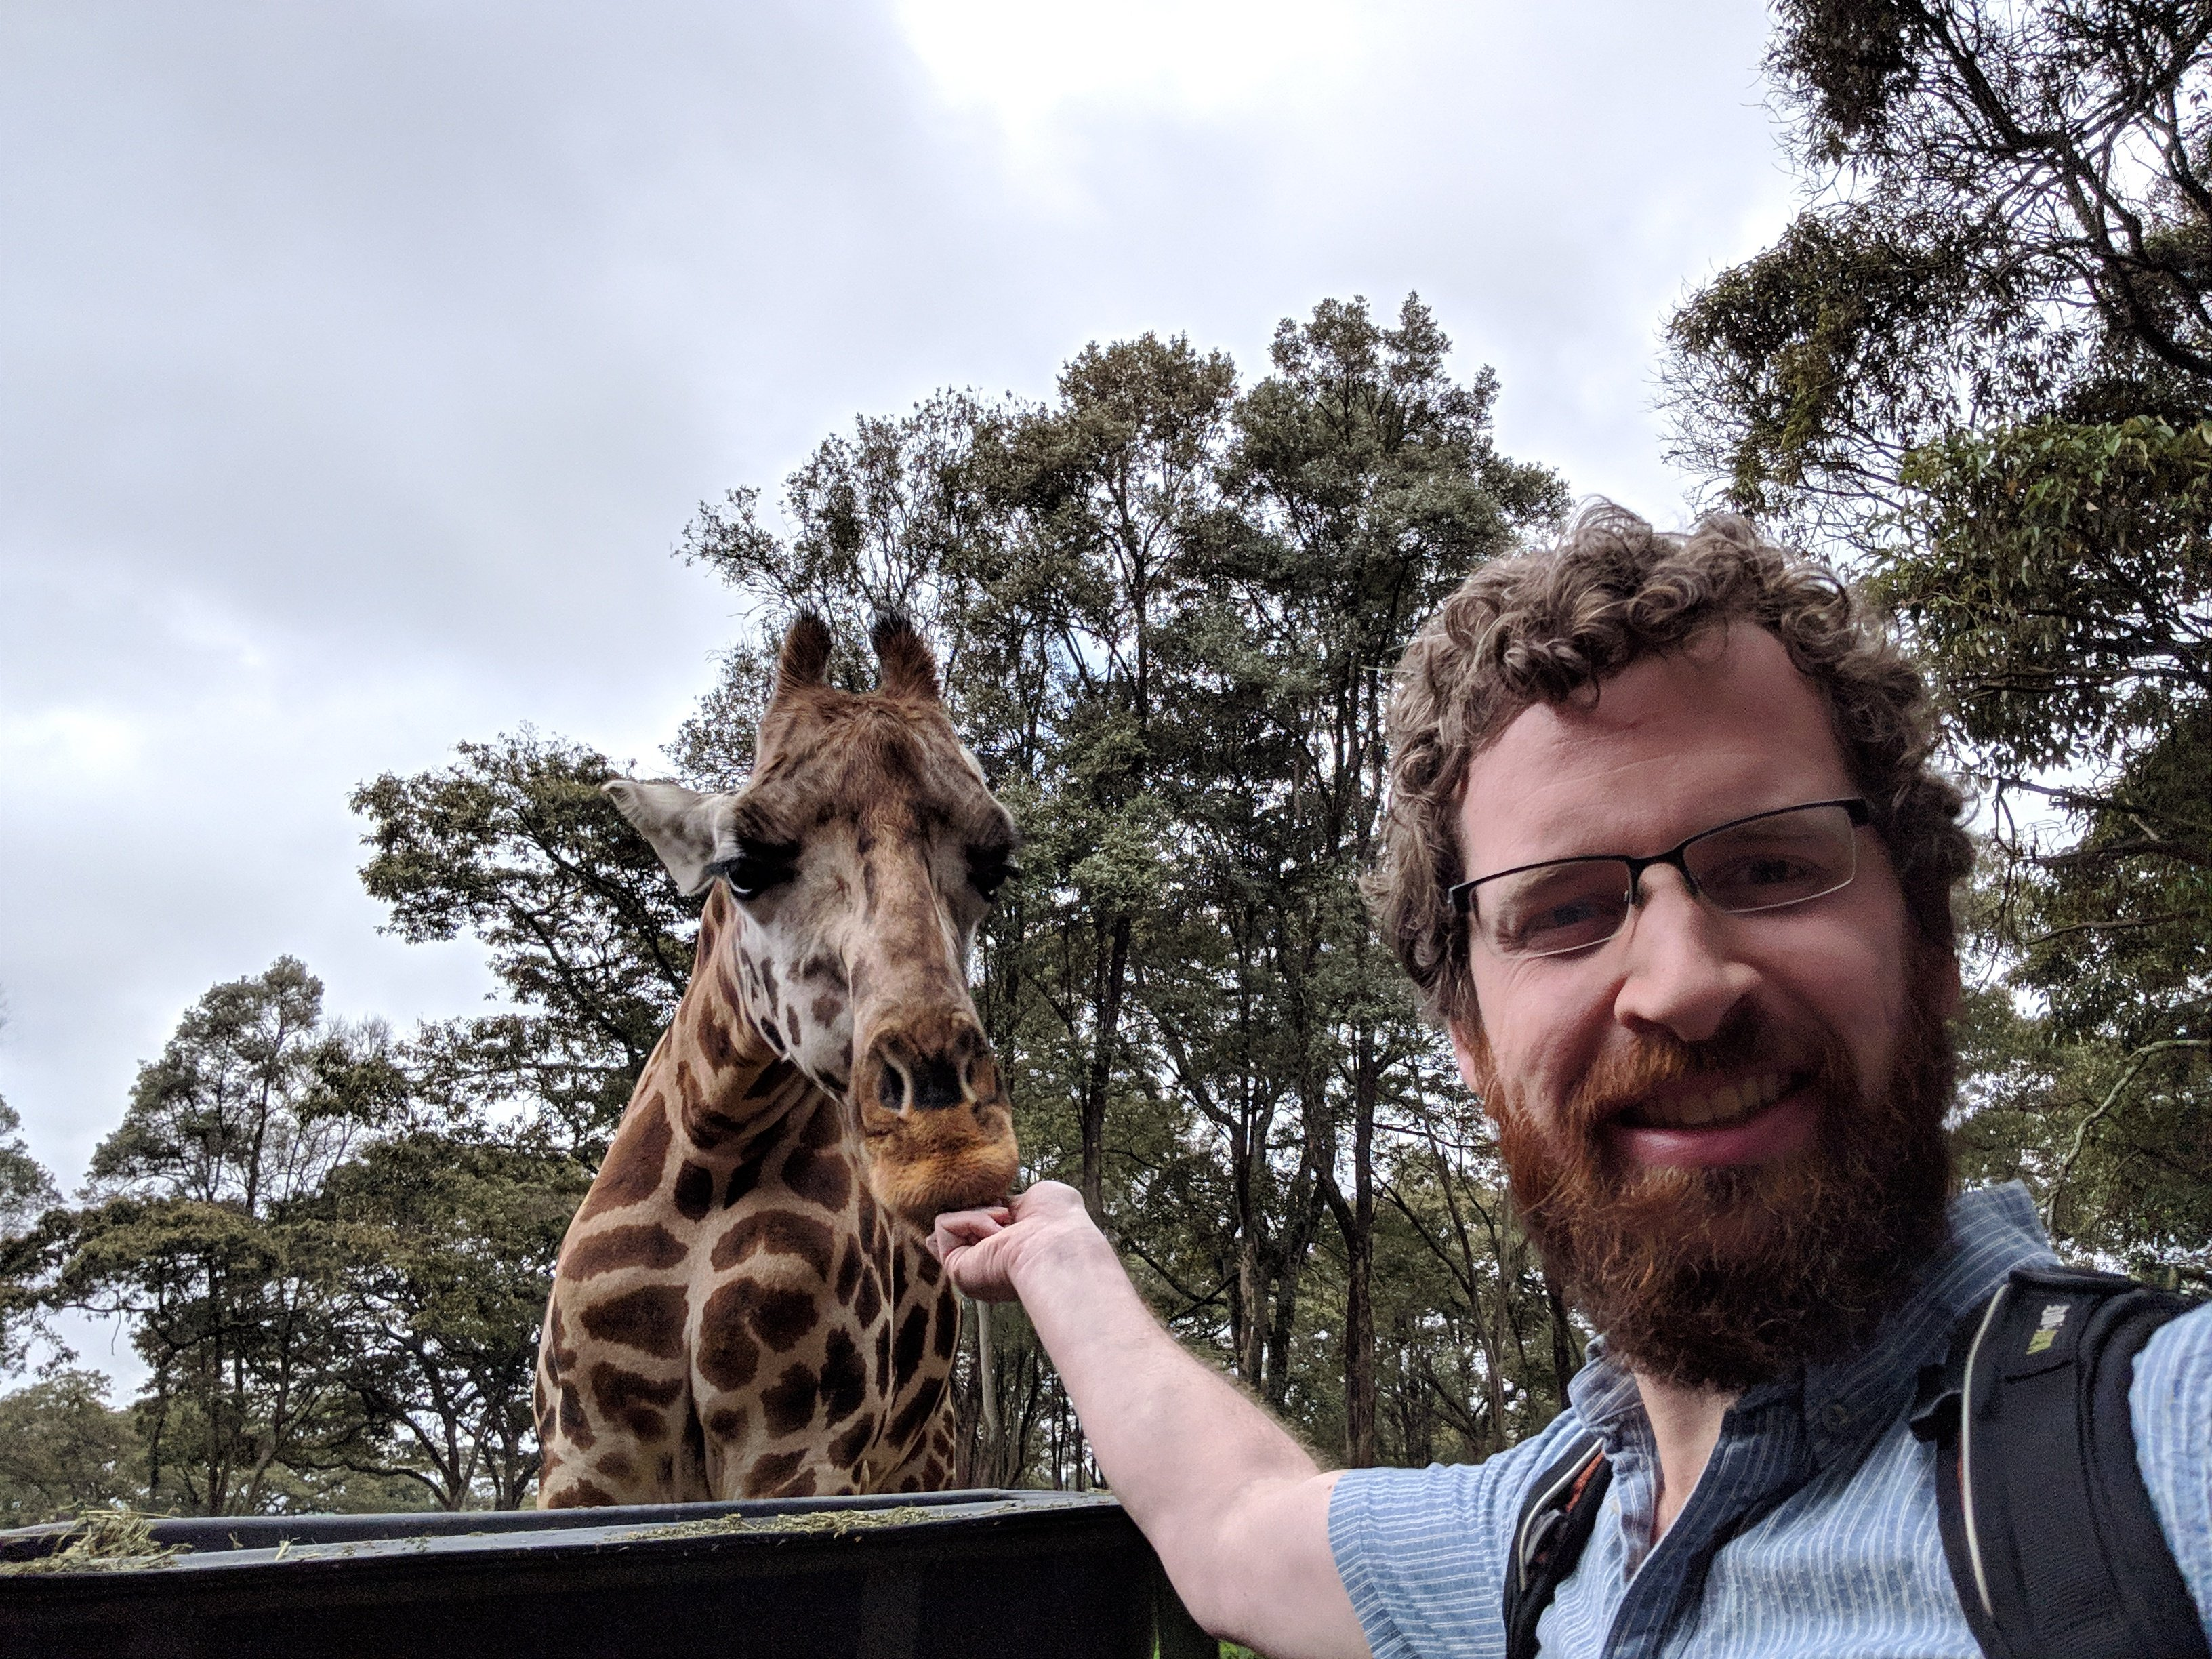 A selfie of me feeding a giraffe.